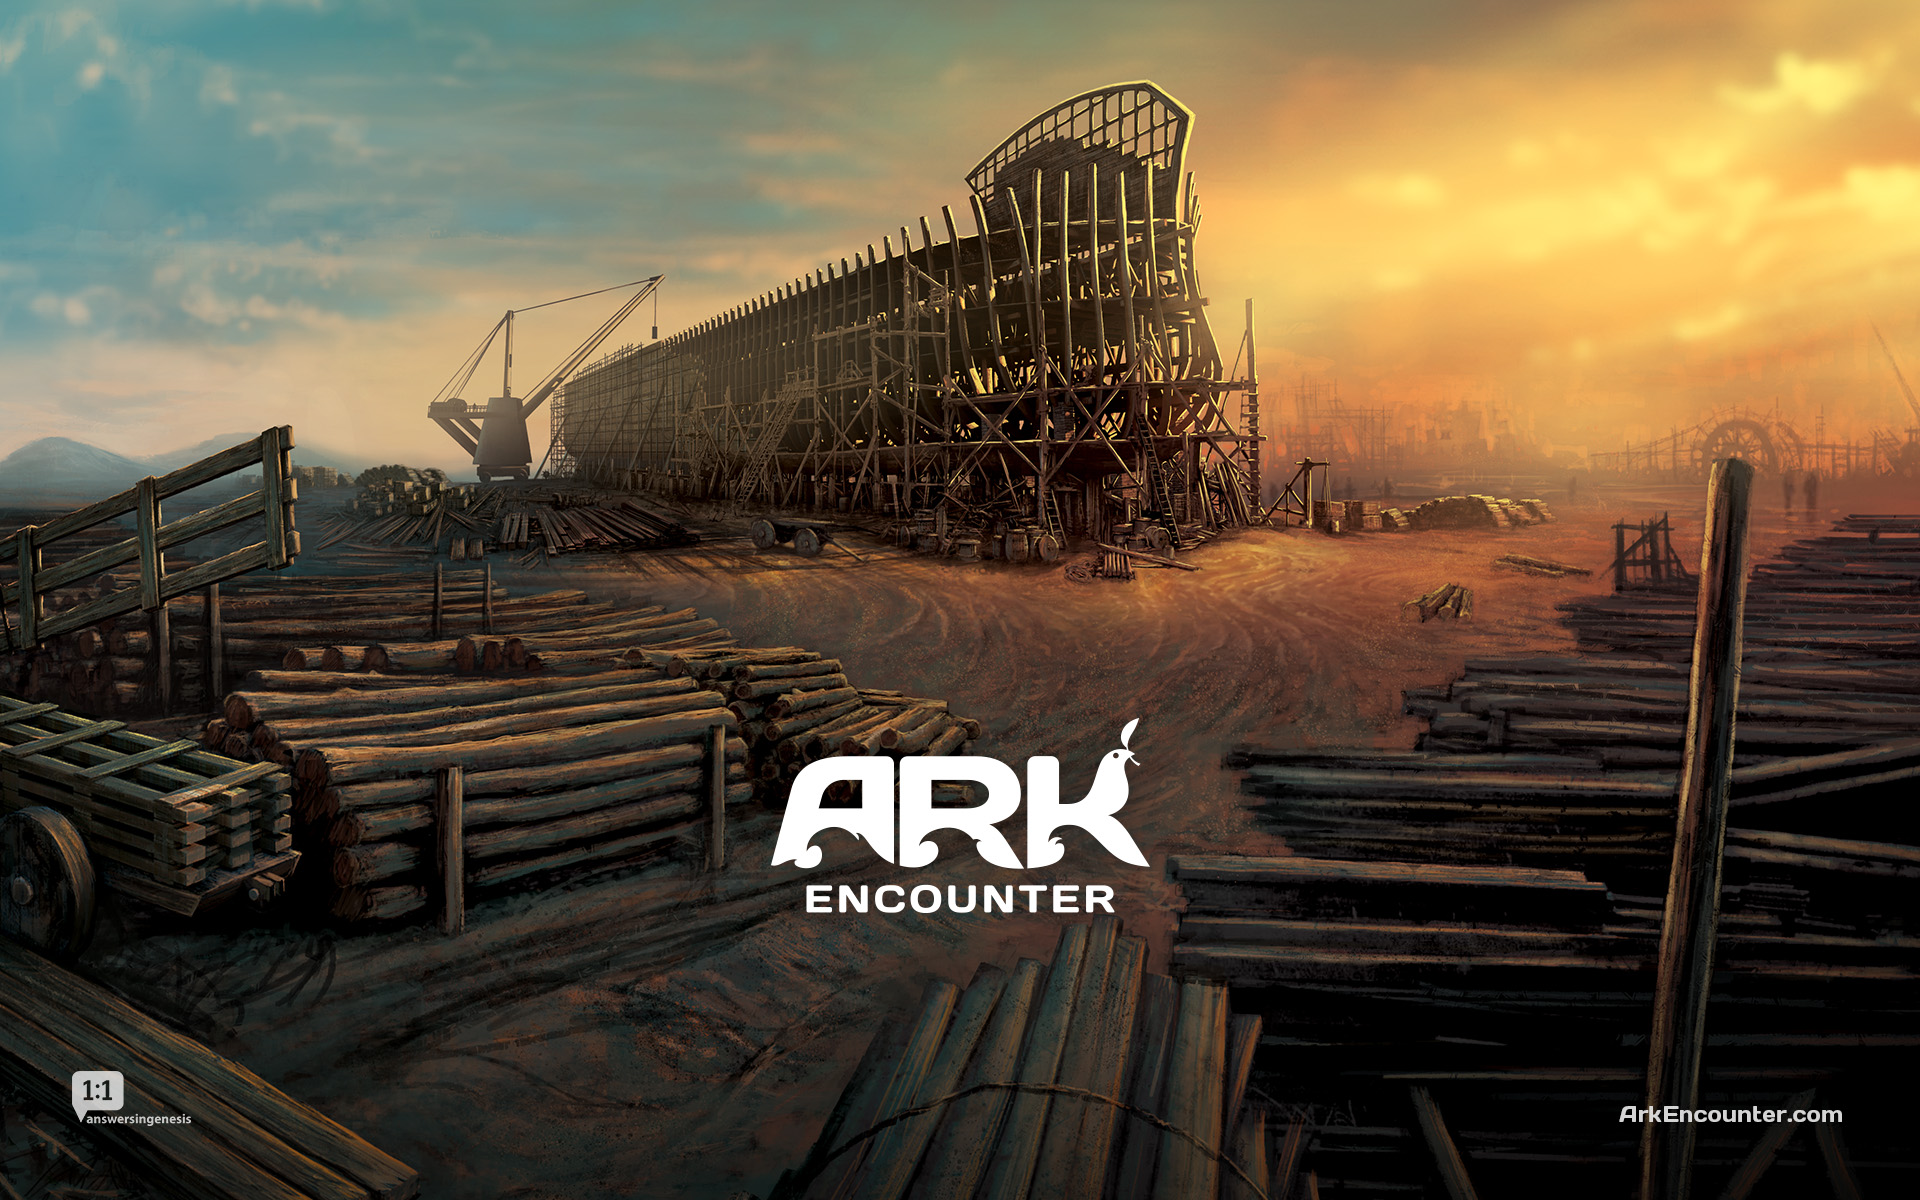 The Saskatchewan replica would be three-storeys high, 23 metres wide and 135 metres long — nearly the length of a CFL football field. It would also contain a children's playground. (Photo: Ark Encounter)